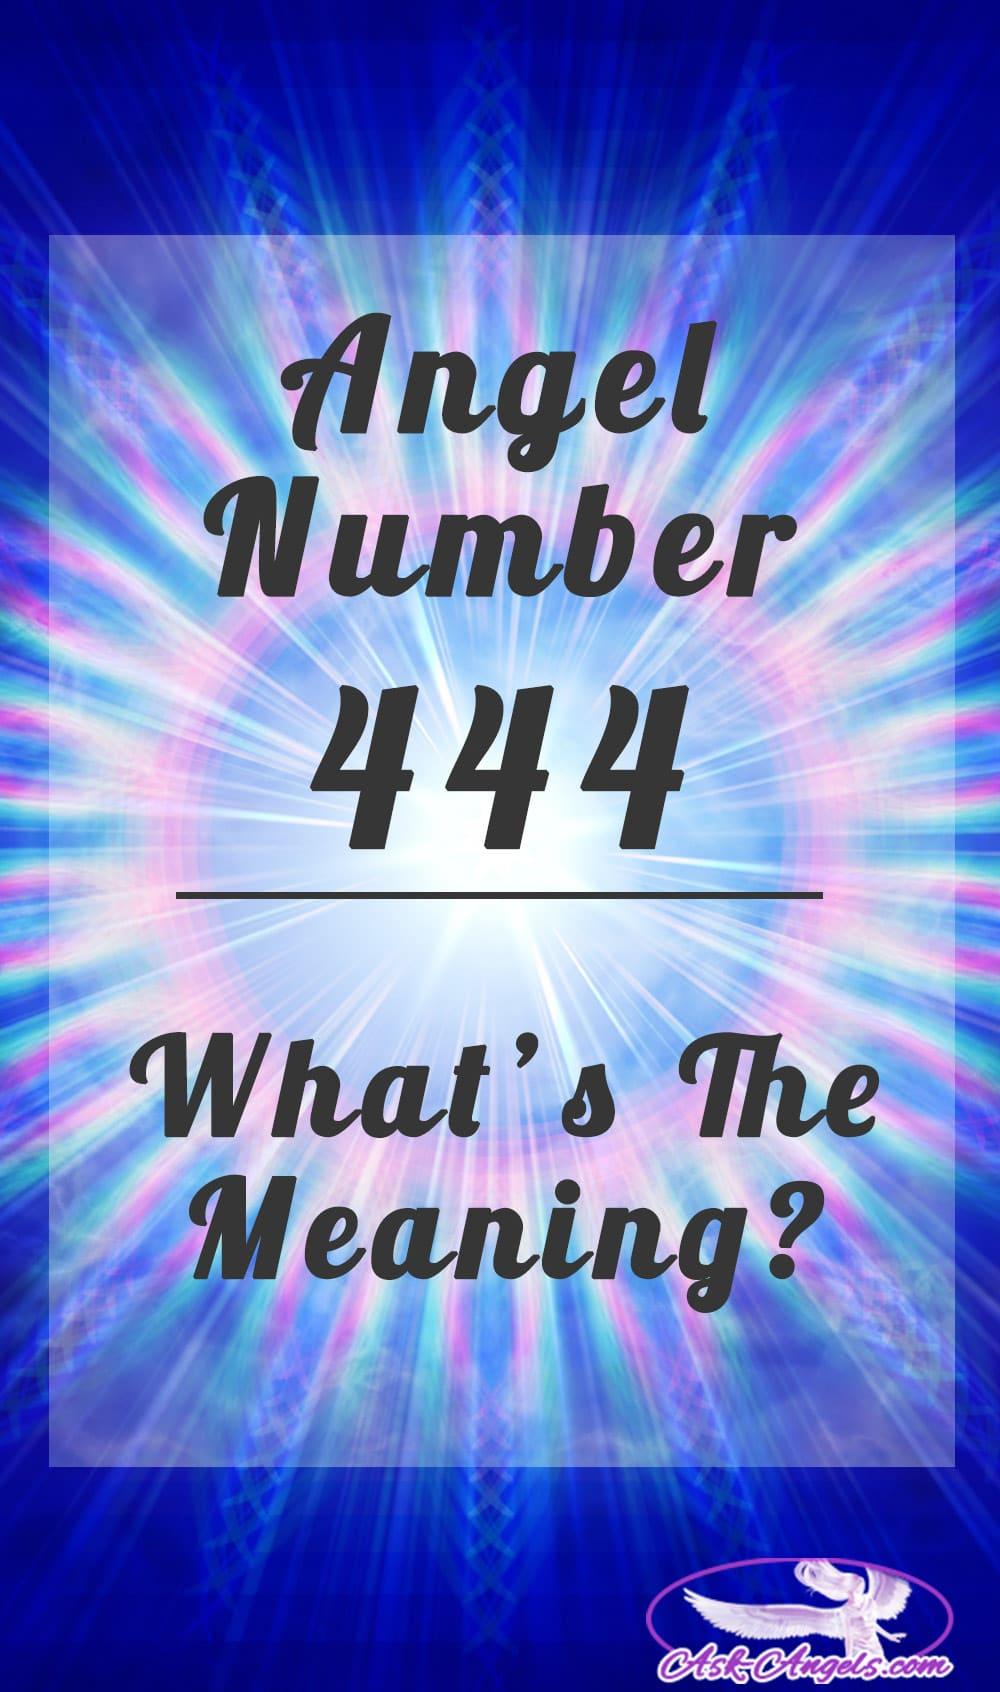 Angel number 1959 Meaning 444 love meaning